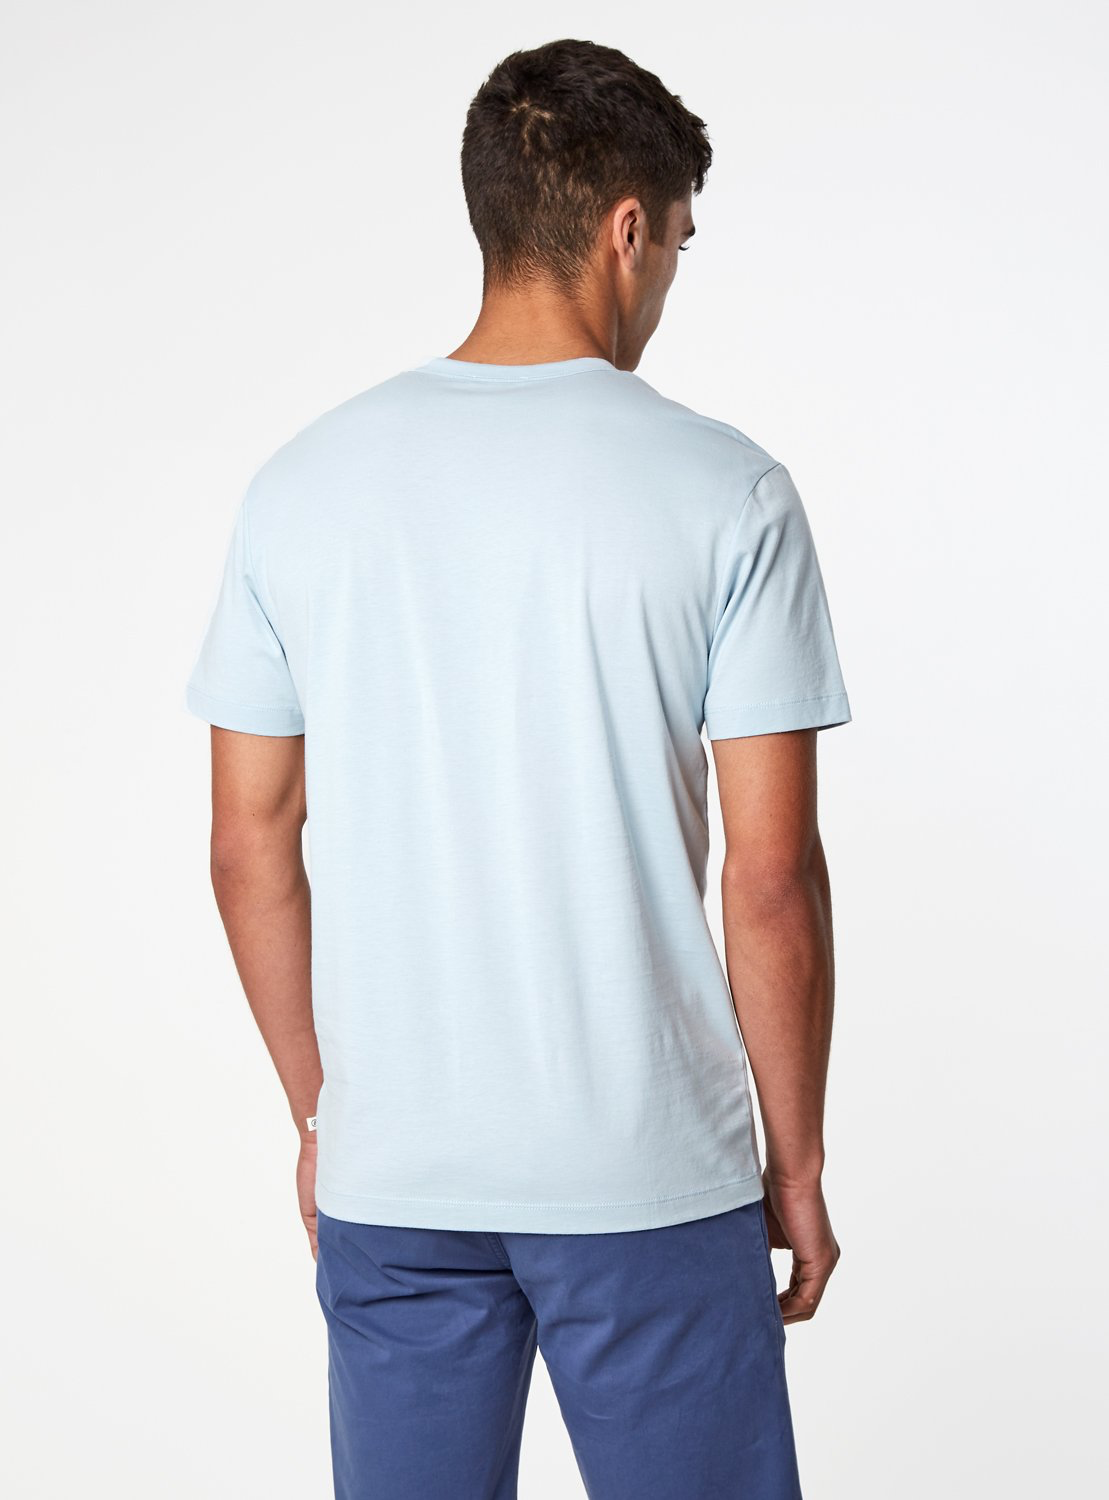 Iconic Light Blue Tee